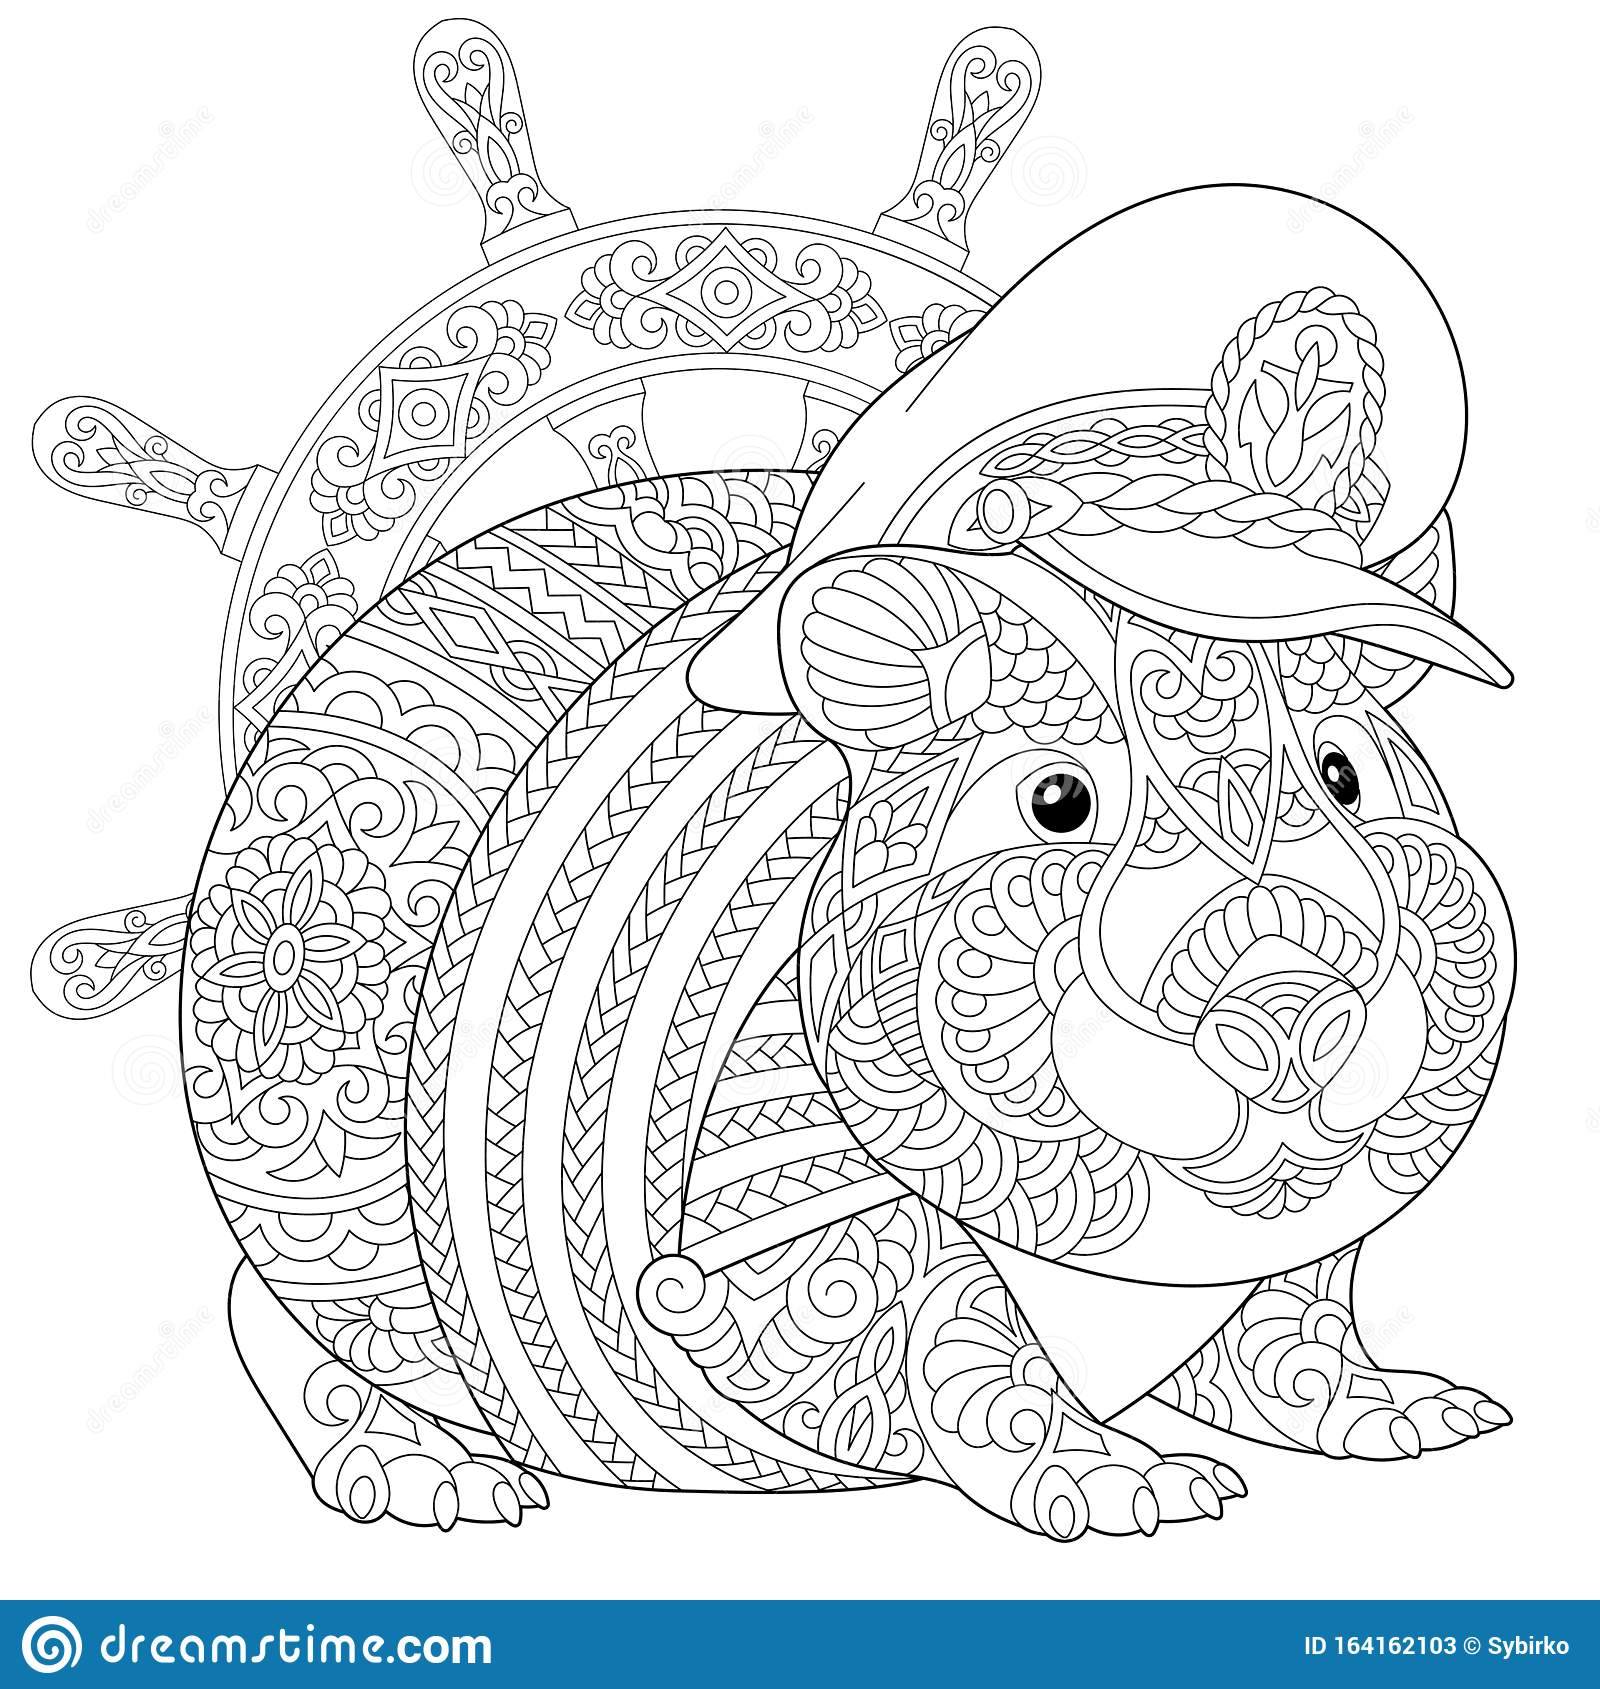 Collection Of Coloring Pages Photos Illustrations Dreamstime